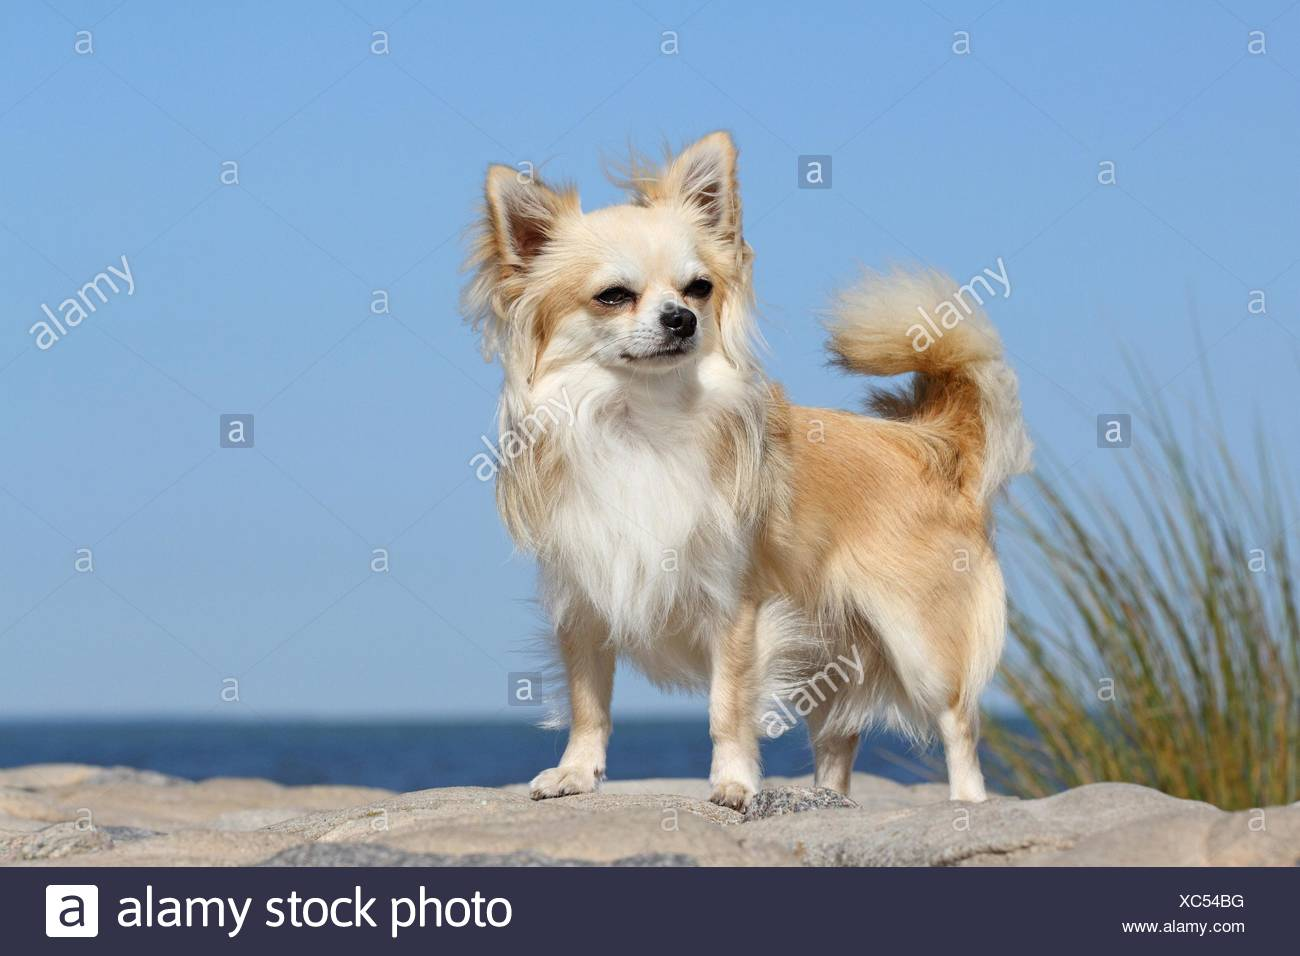 longhaired Chihuahua - Stock Image